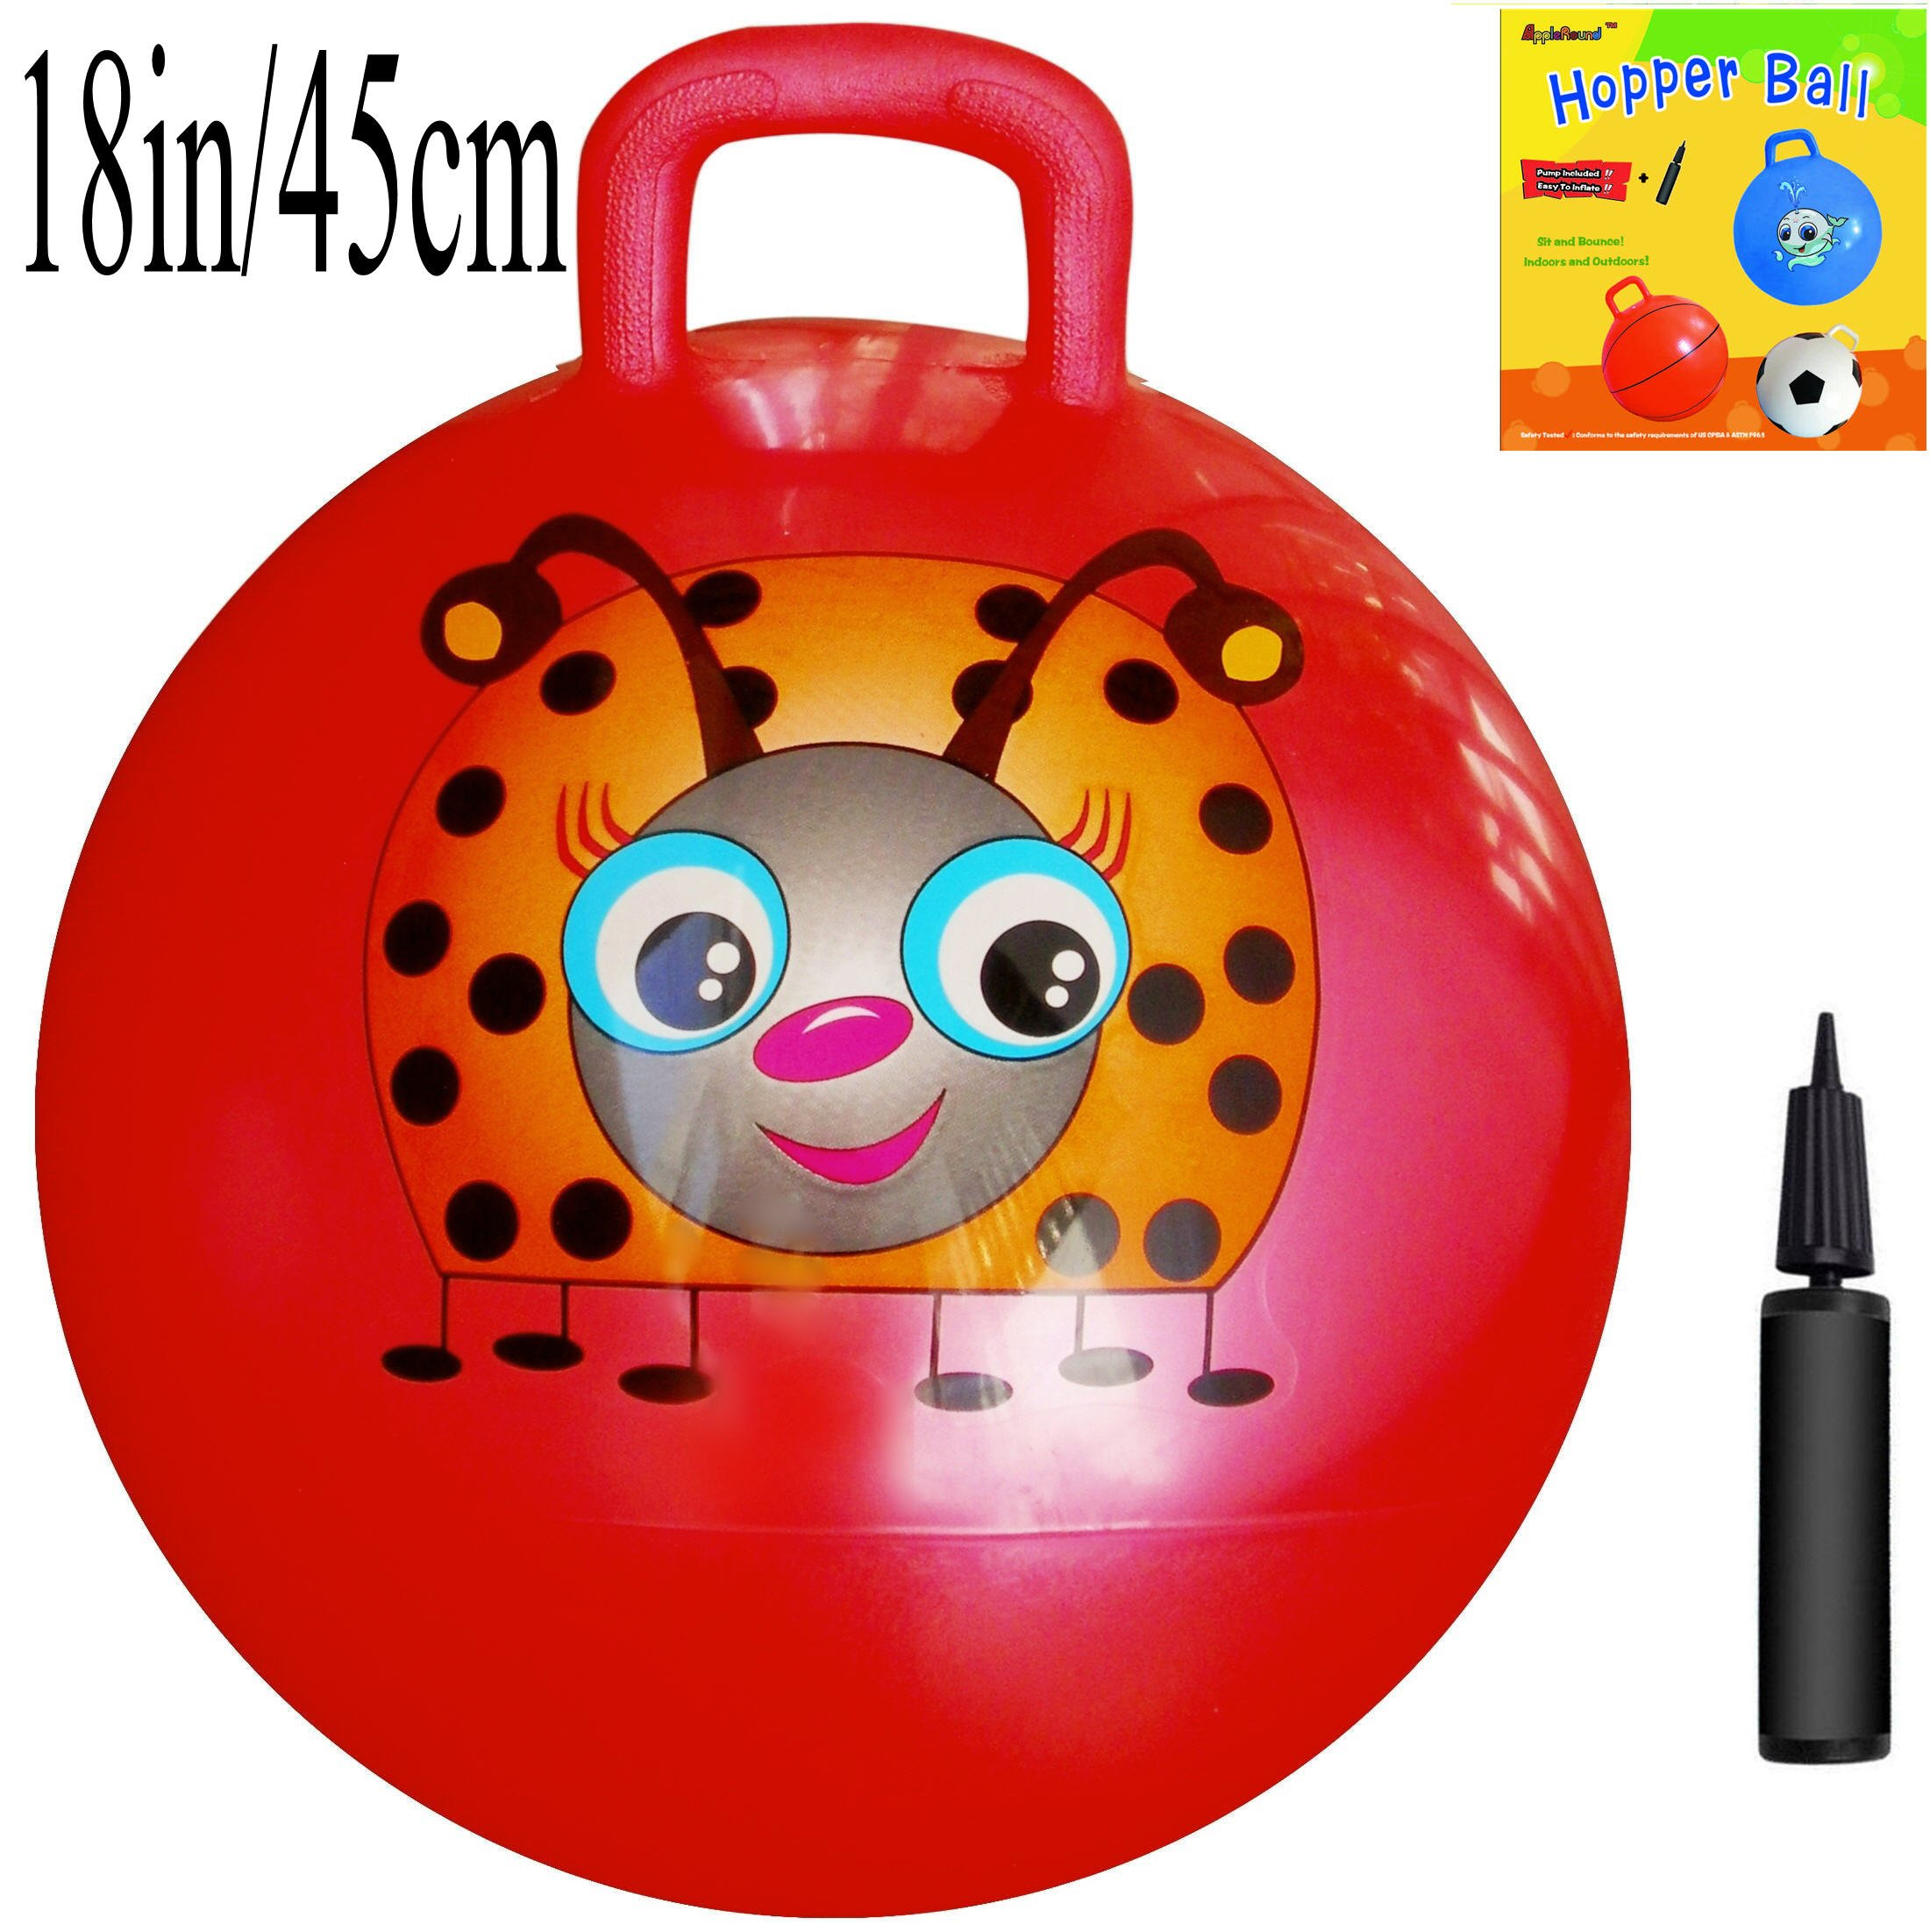 AppleRound Space Hopper Ball: Red, 18in/45cm Diameter for Ages 3-6, Pump Included (Hop Ball, Kangaroo Bouncer, Hoppity Hop, Sit and Bounce, Jumping Ball)